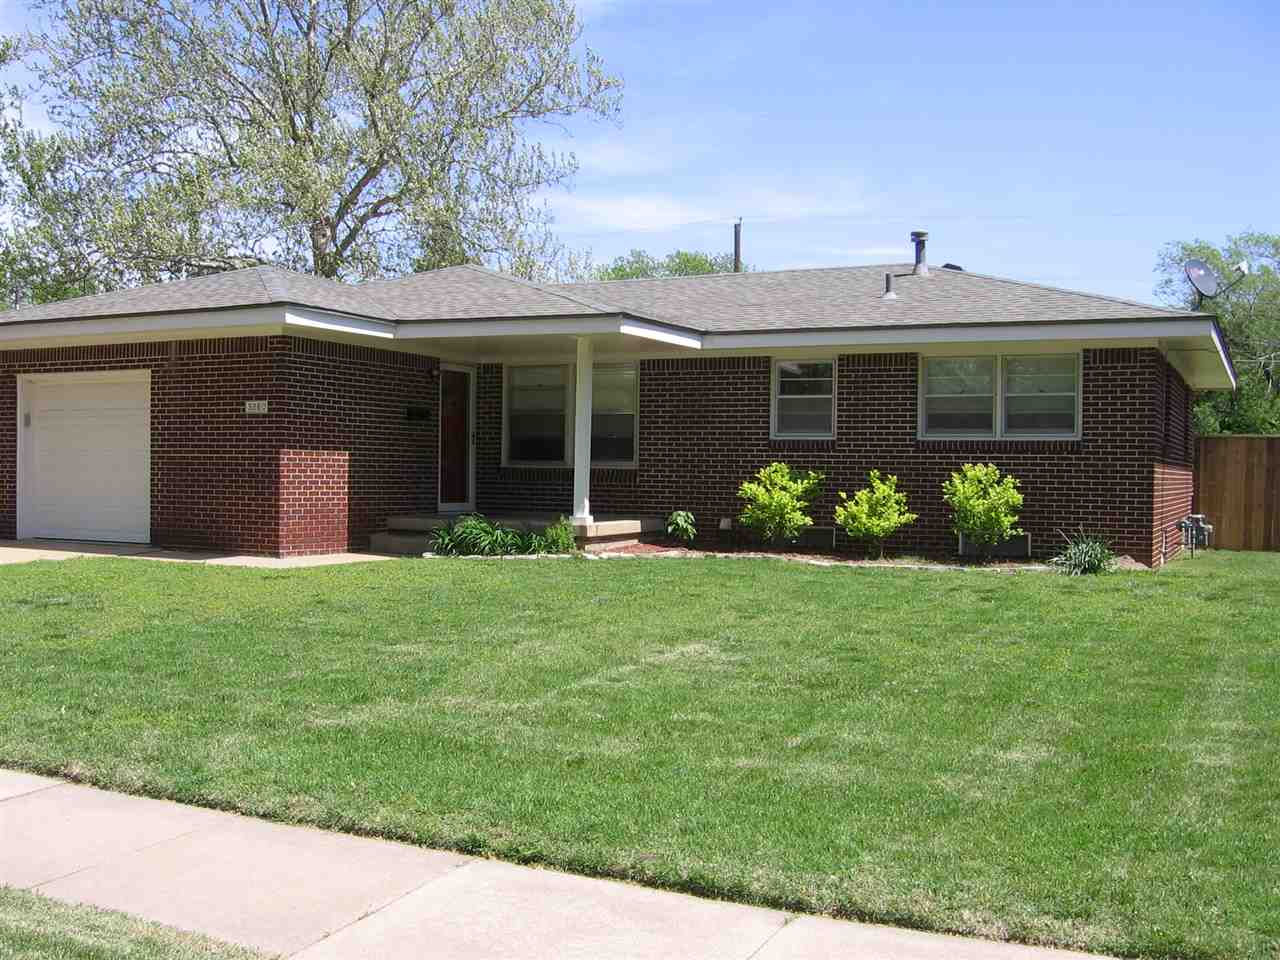 3260 S Oak St, Wichita, KS 67217